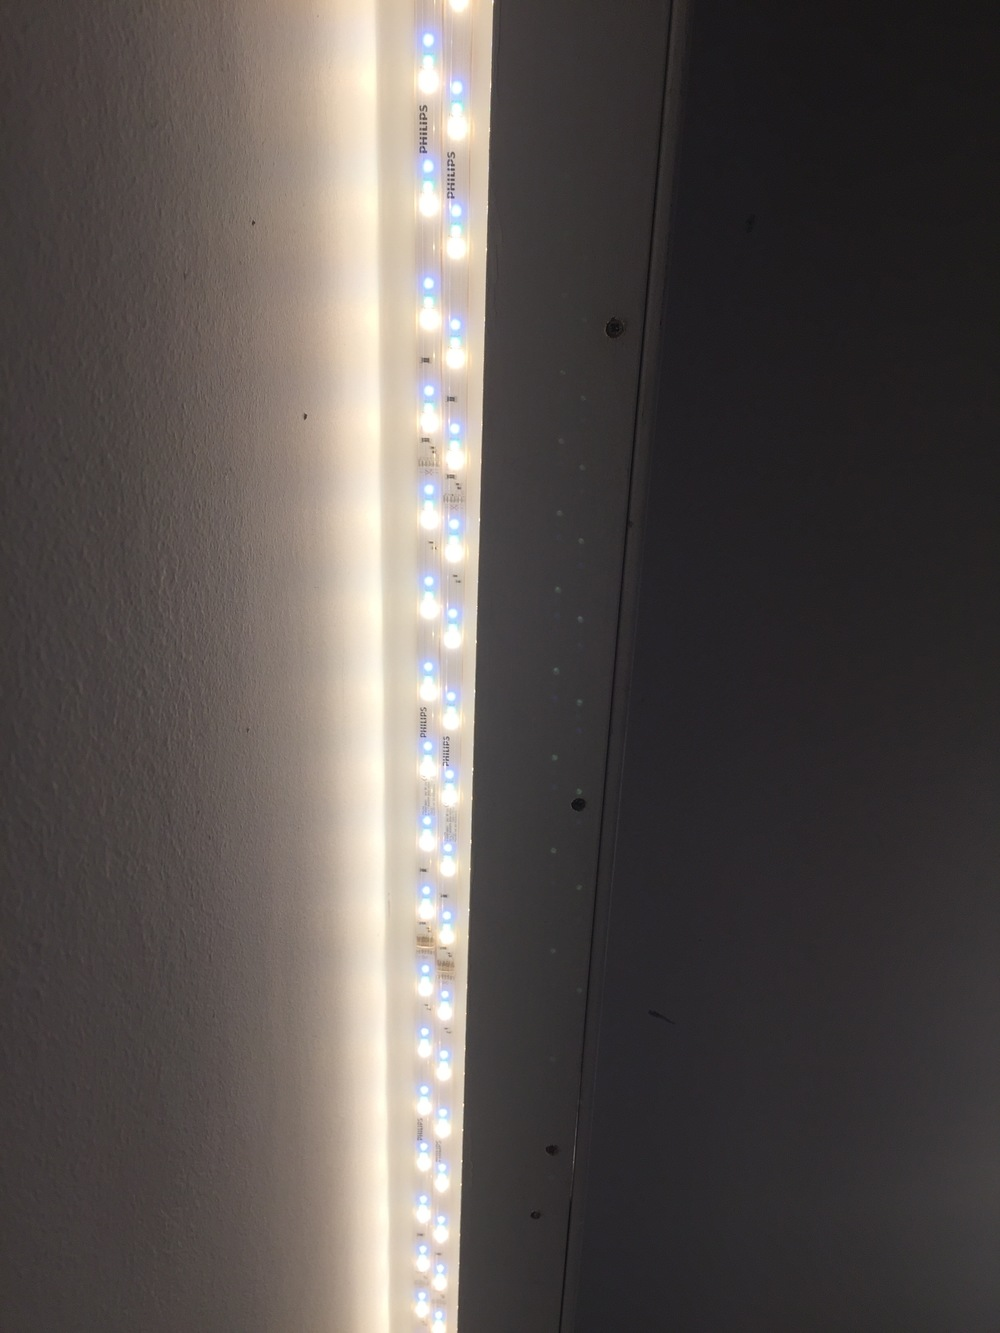 Lightstrip position 3: Visible LEDs